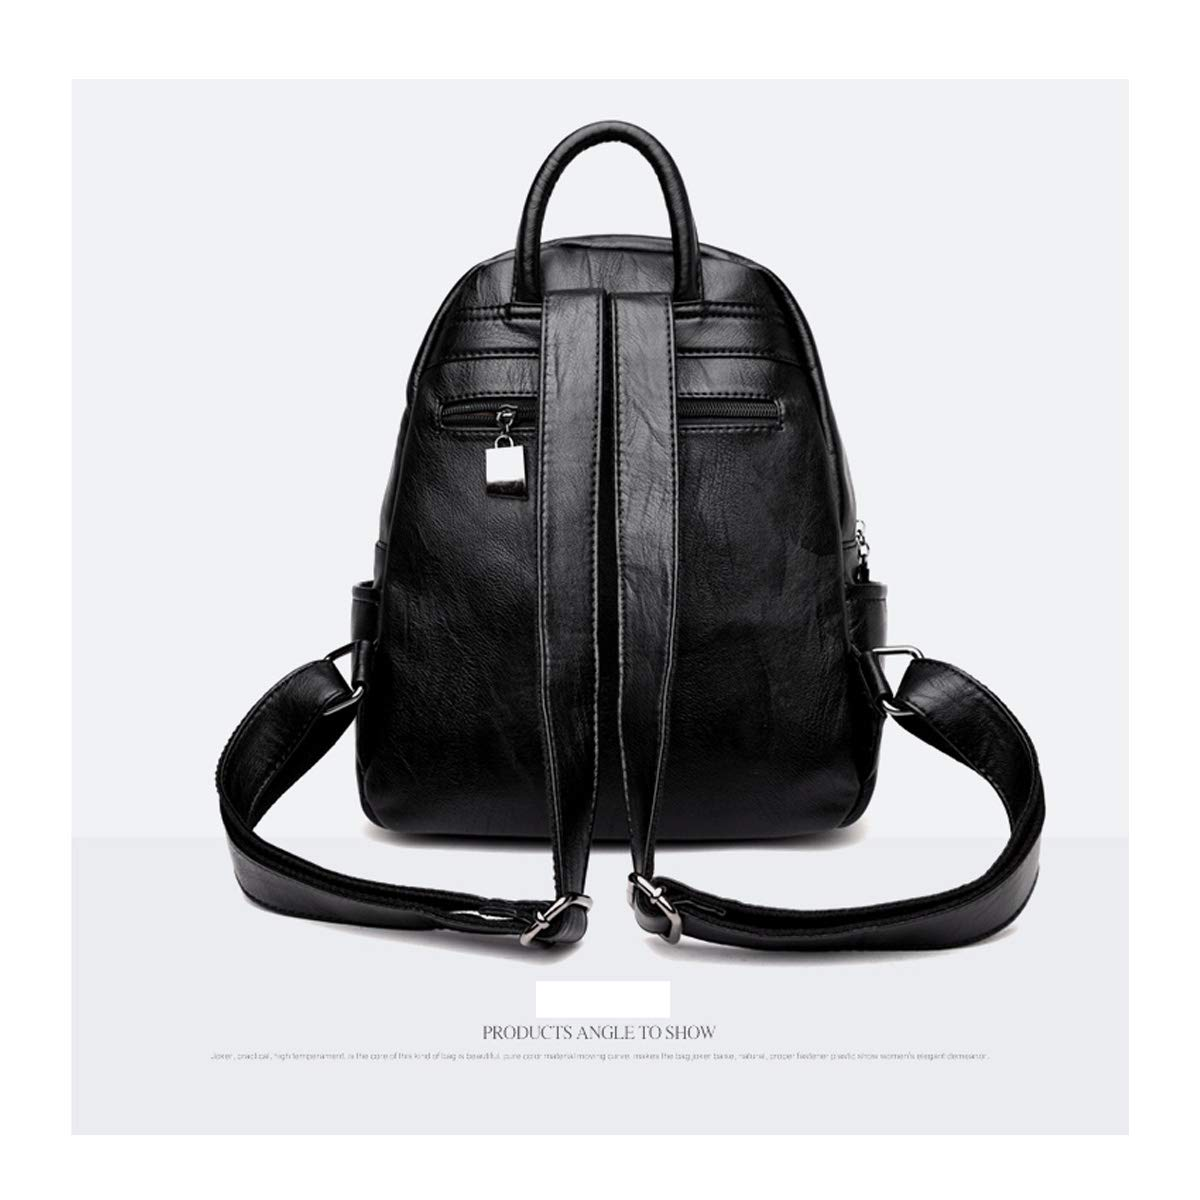 Simple Fashion Haoyushangmao Girls Multifunctional Backpack for Daily Travel//Tourism//School//Work//Fashion//Leisure Black // // Blue//Red//Bronze Color : Black, Size : 26cm30cm14cm PU Leather